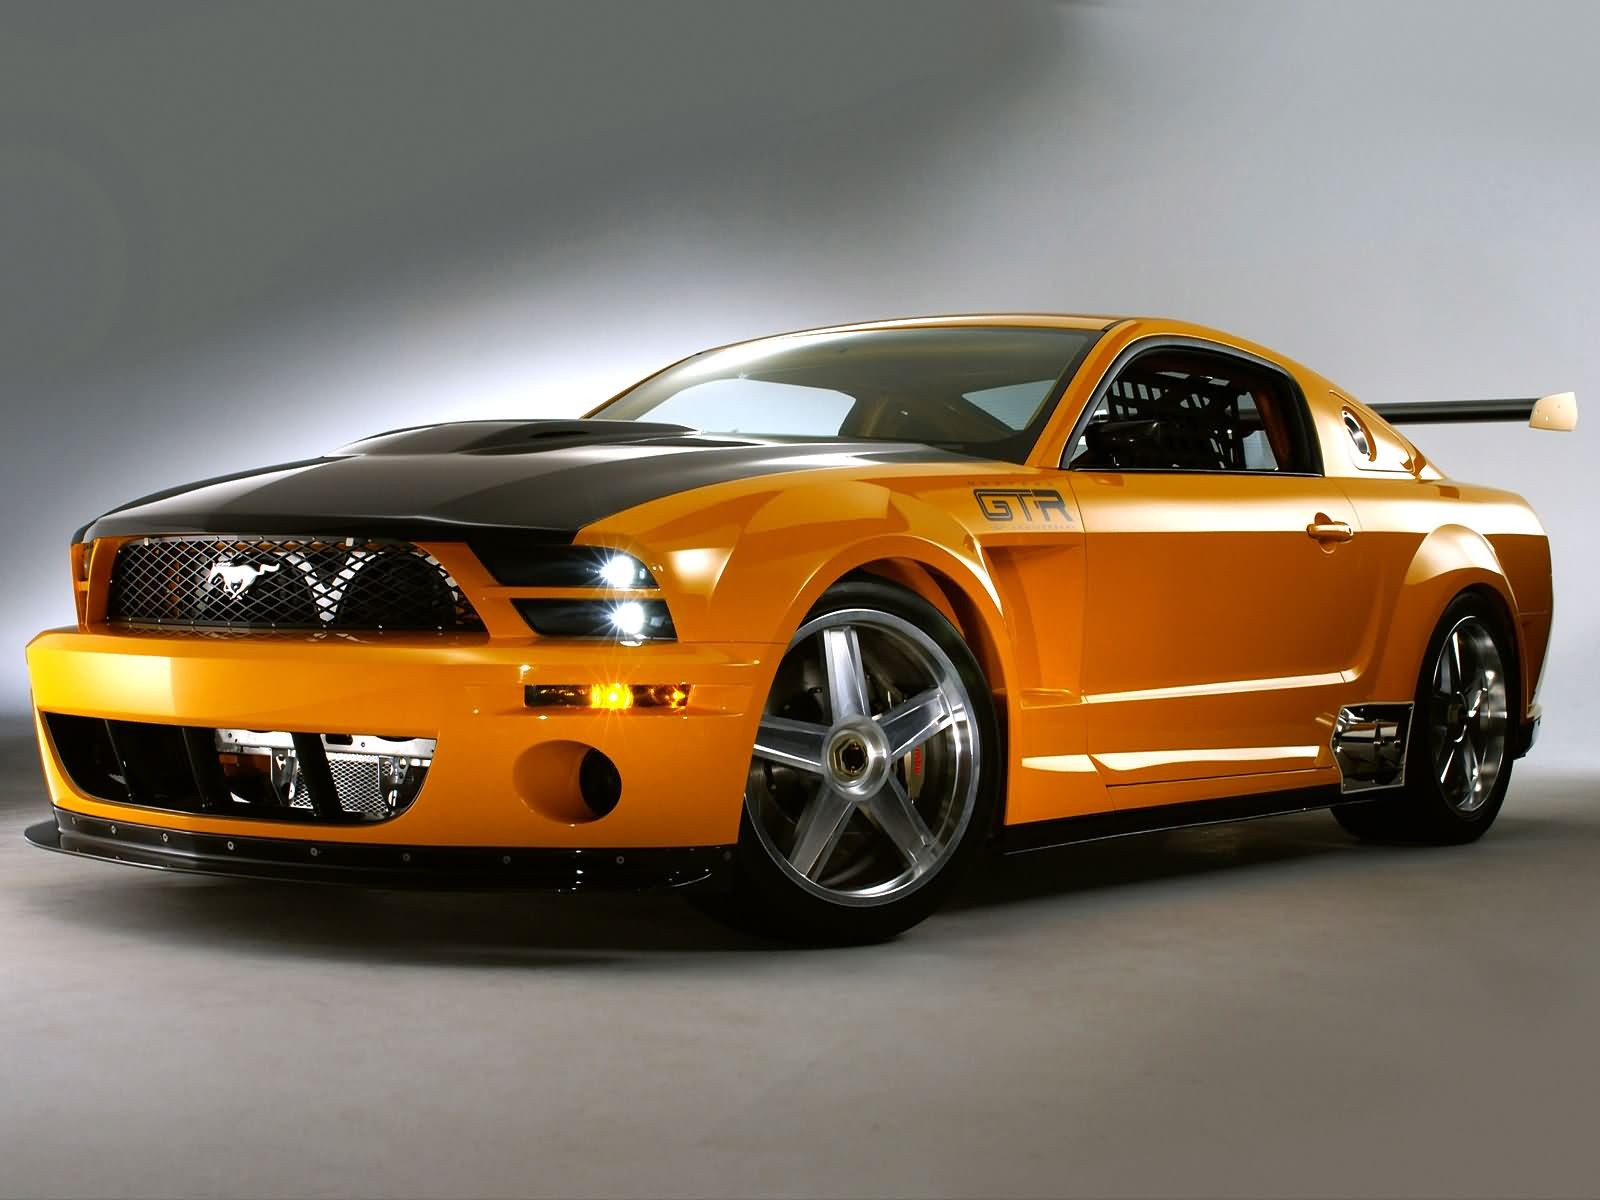 mustang gtr angle wallpapers 10570 1600x1200 Mustang gtr wallpaper